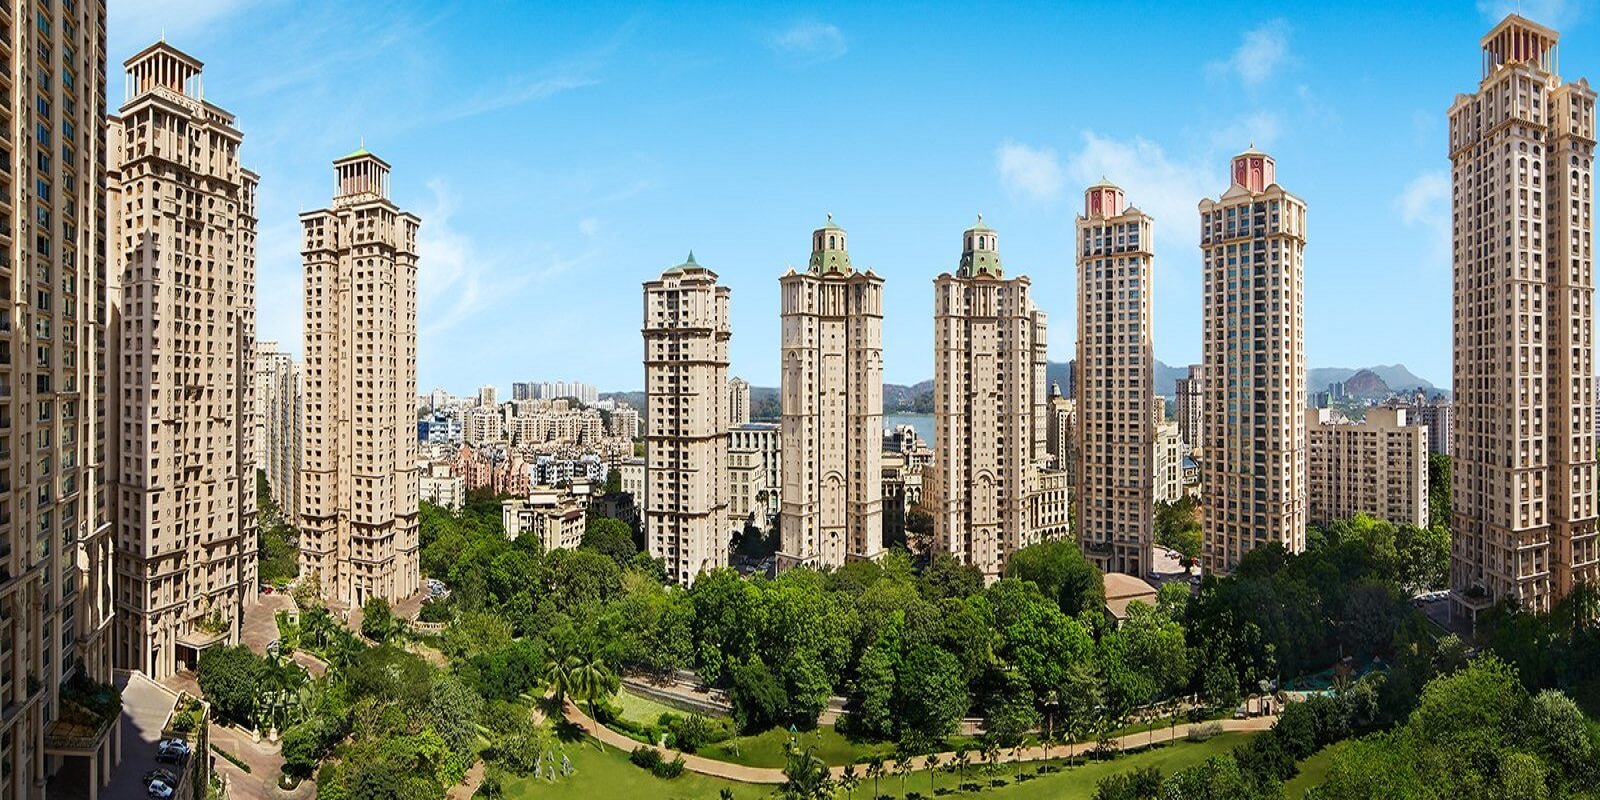 hiranandani zen project large image1